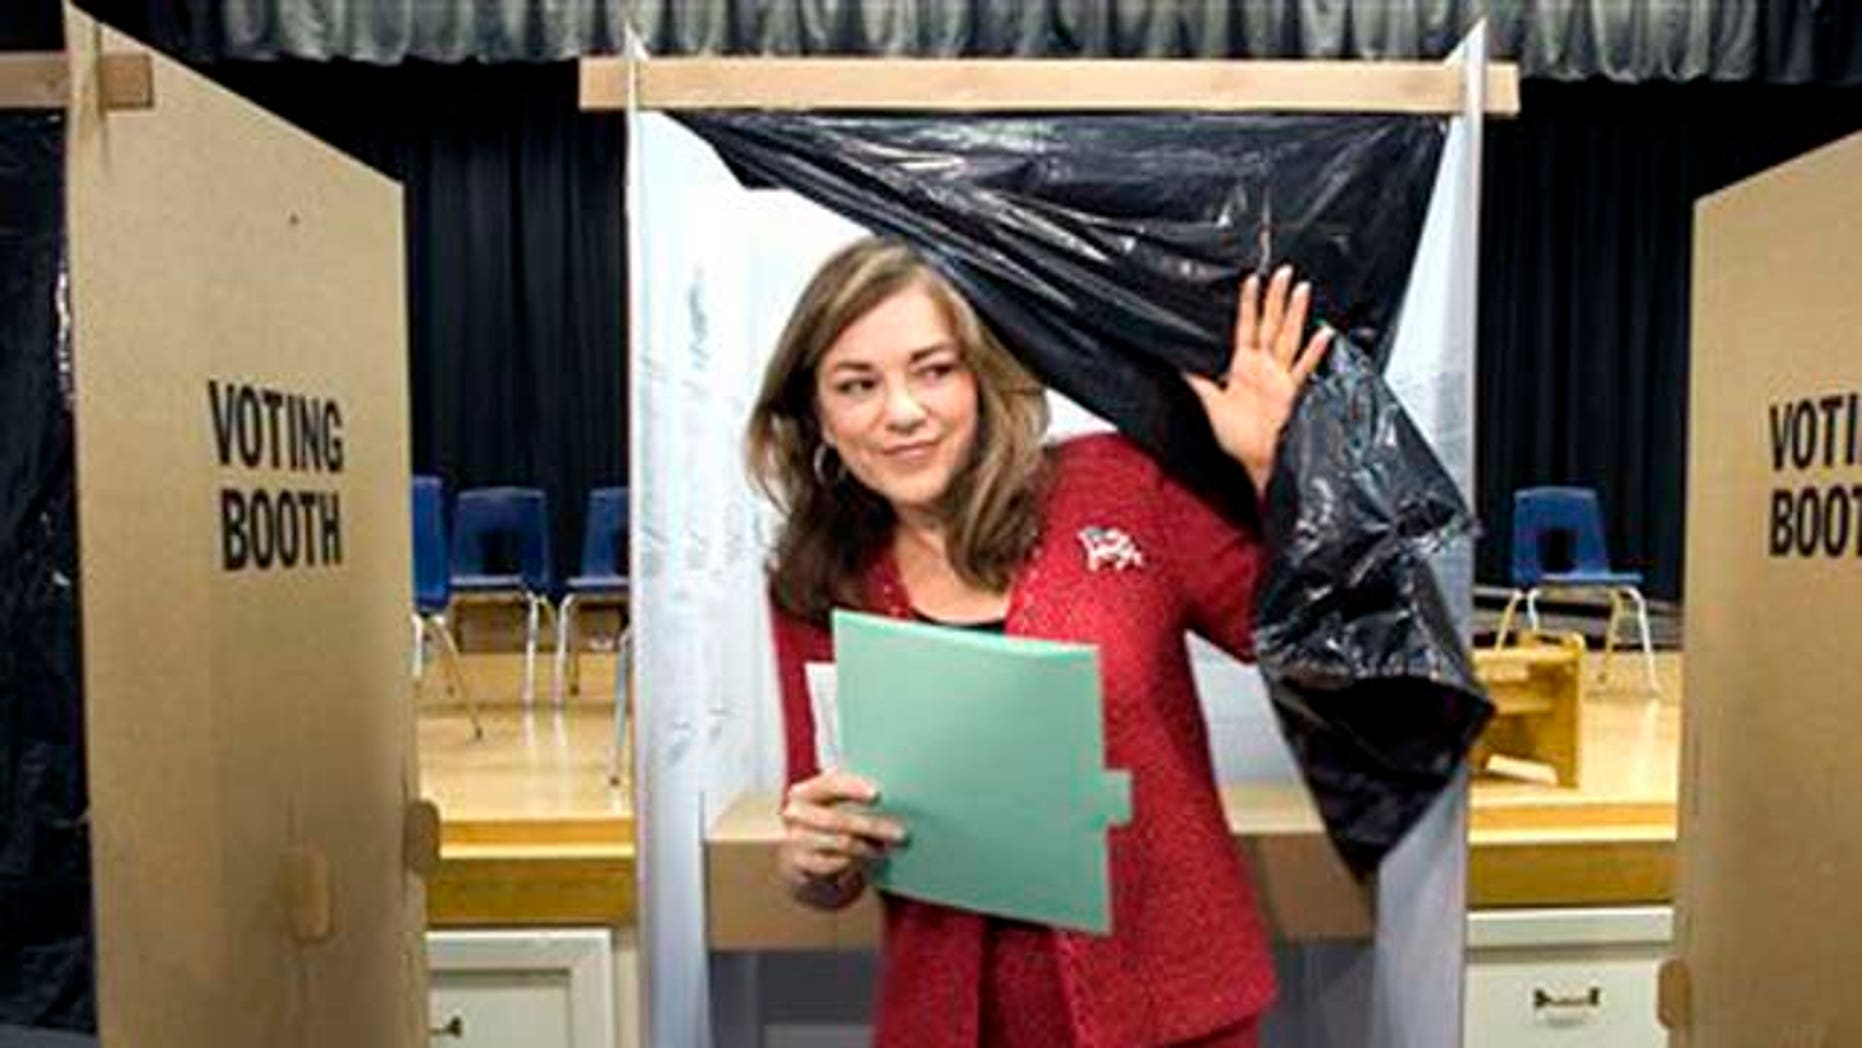 Democratic Congresswoman Loretta Sanchez emerges from a voting booth after casting her ballot at Santiago Elementary School in Santa Ana, Calif. on  Tuesday, Nov. 2, 2010.  (AP Photo/The Orange County Register, H. Lorren Au Jr. )